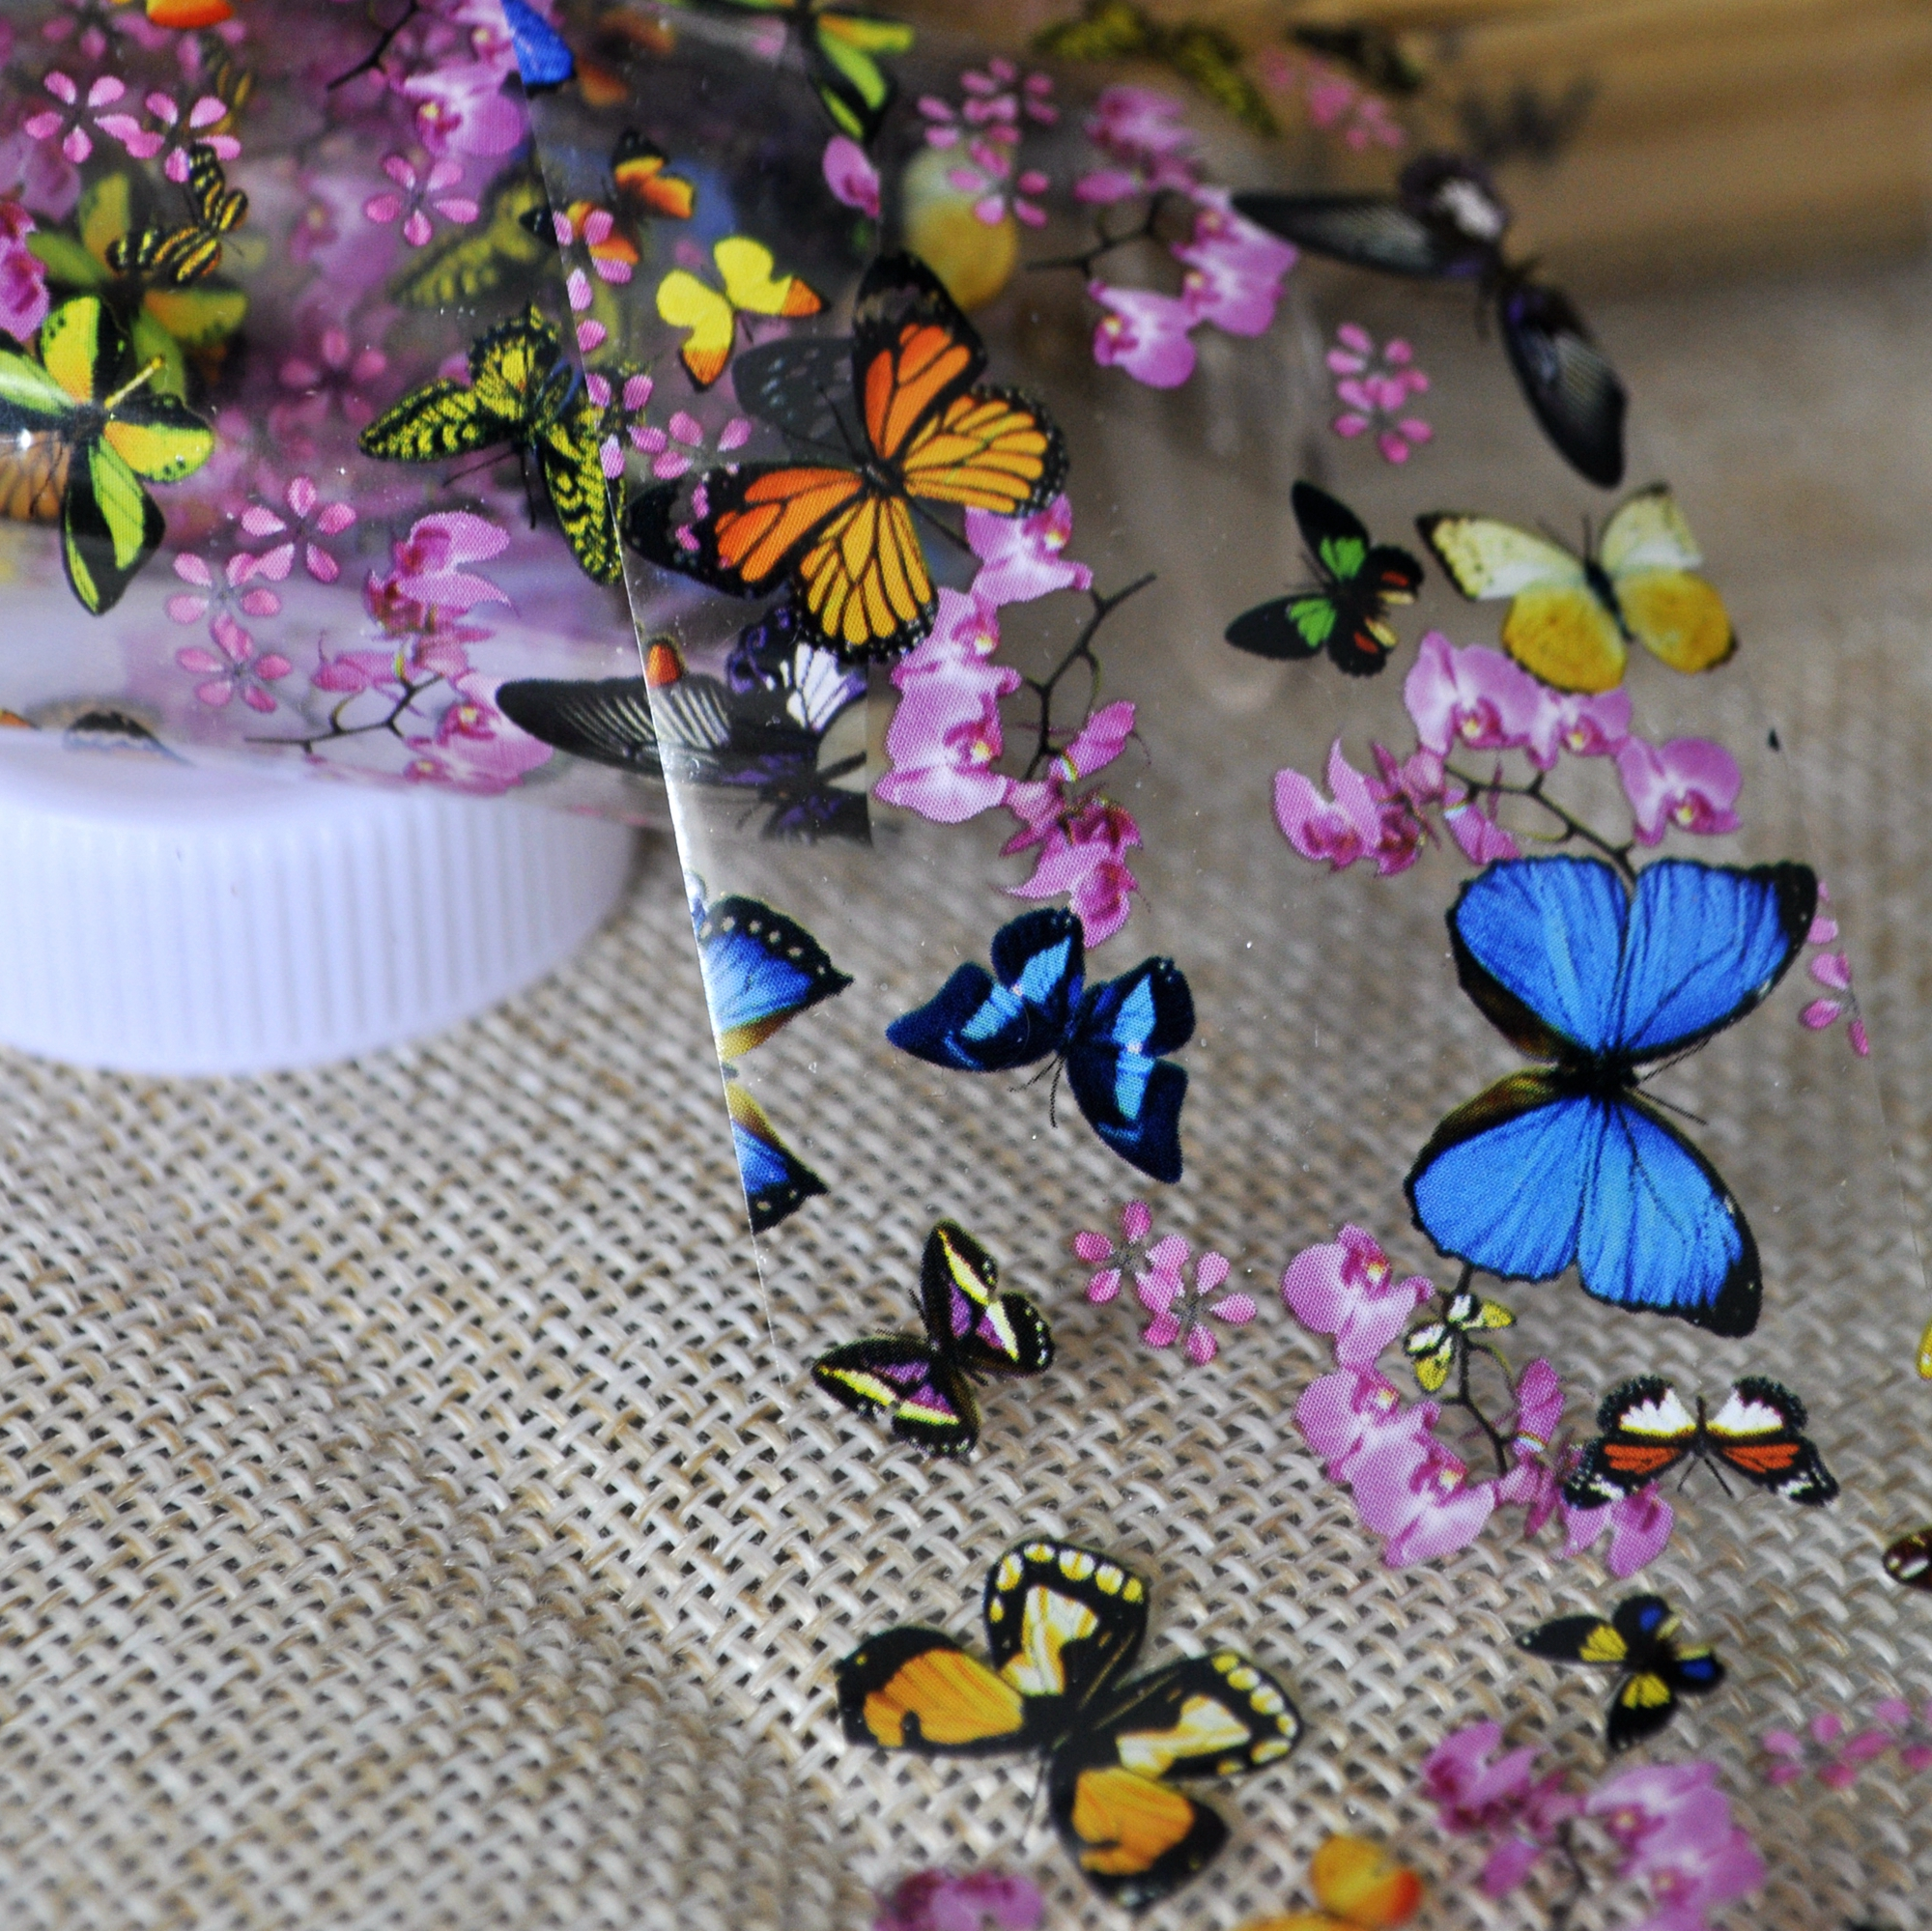 Nail Art Transfer Foils Nail Sticker Tip Decal Decoration Design DIY Butterfly Plum Flower Manicure Tools 653 orange lily flowers nail art transfer foils nail sticker decal tip decoration diy manicure tools 439